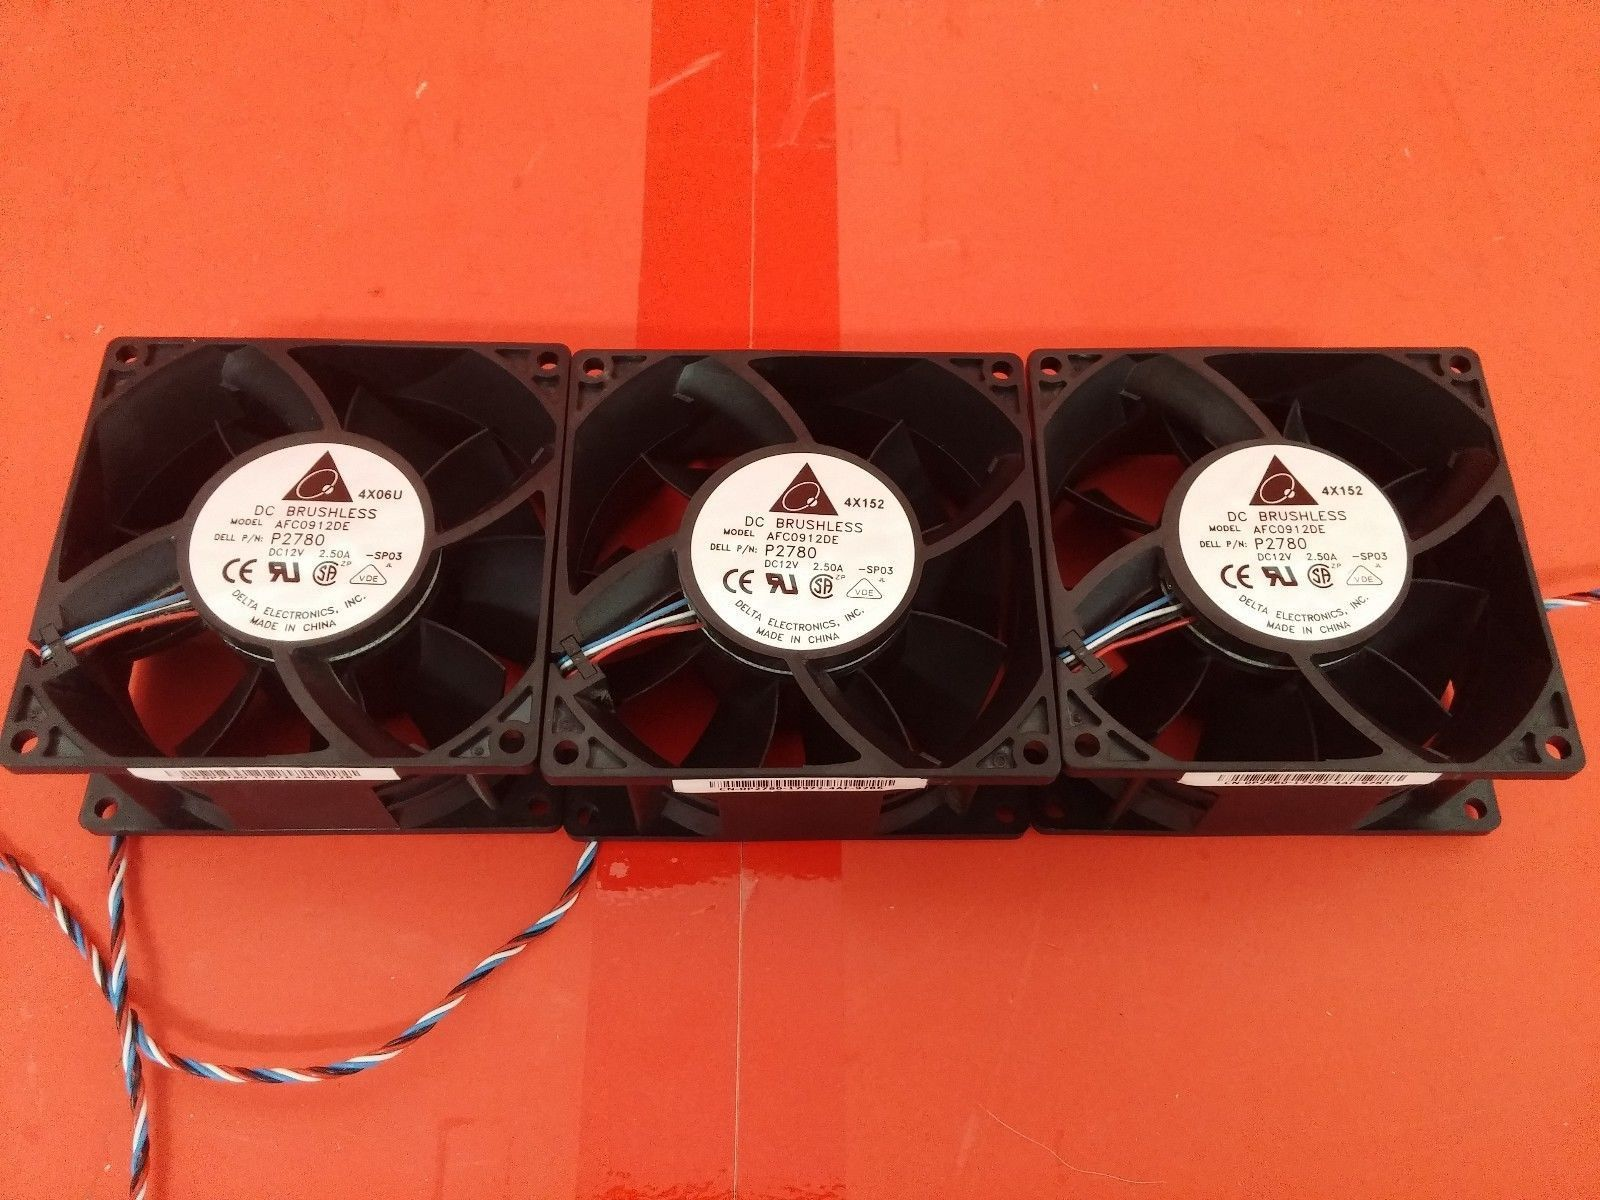 Lot 3x DELL GX280 P2780 Delta AFC0912DE Extreme Hi Fan 5-pin 4-wire DC BRUSHLESS